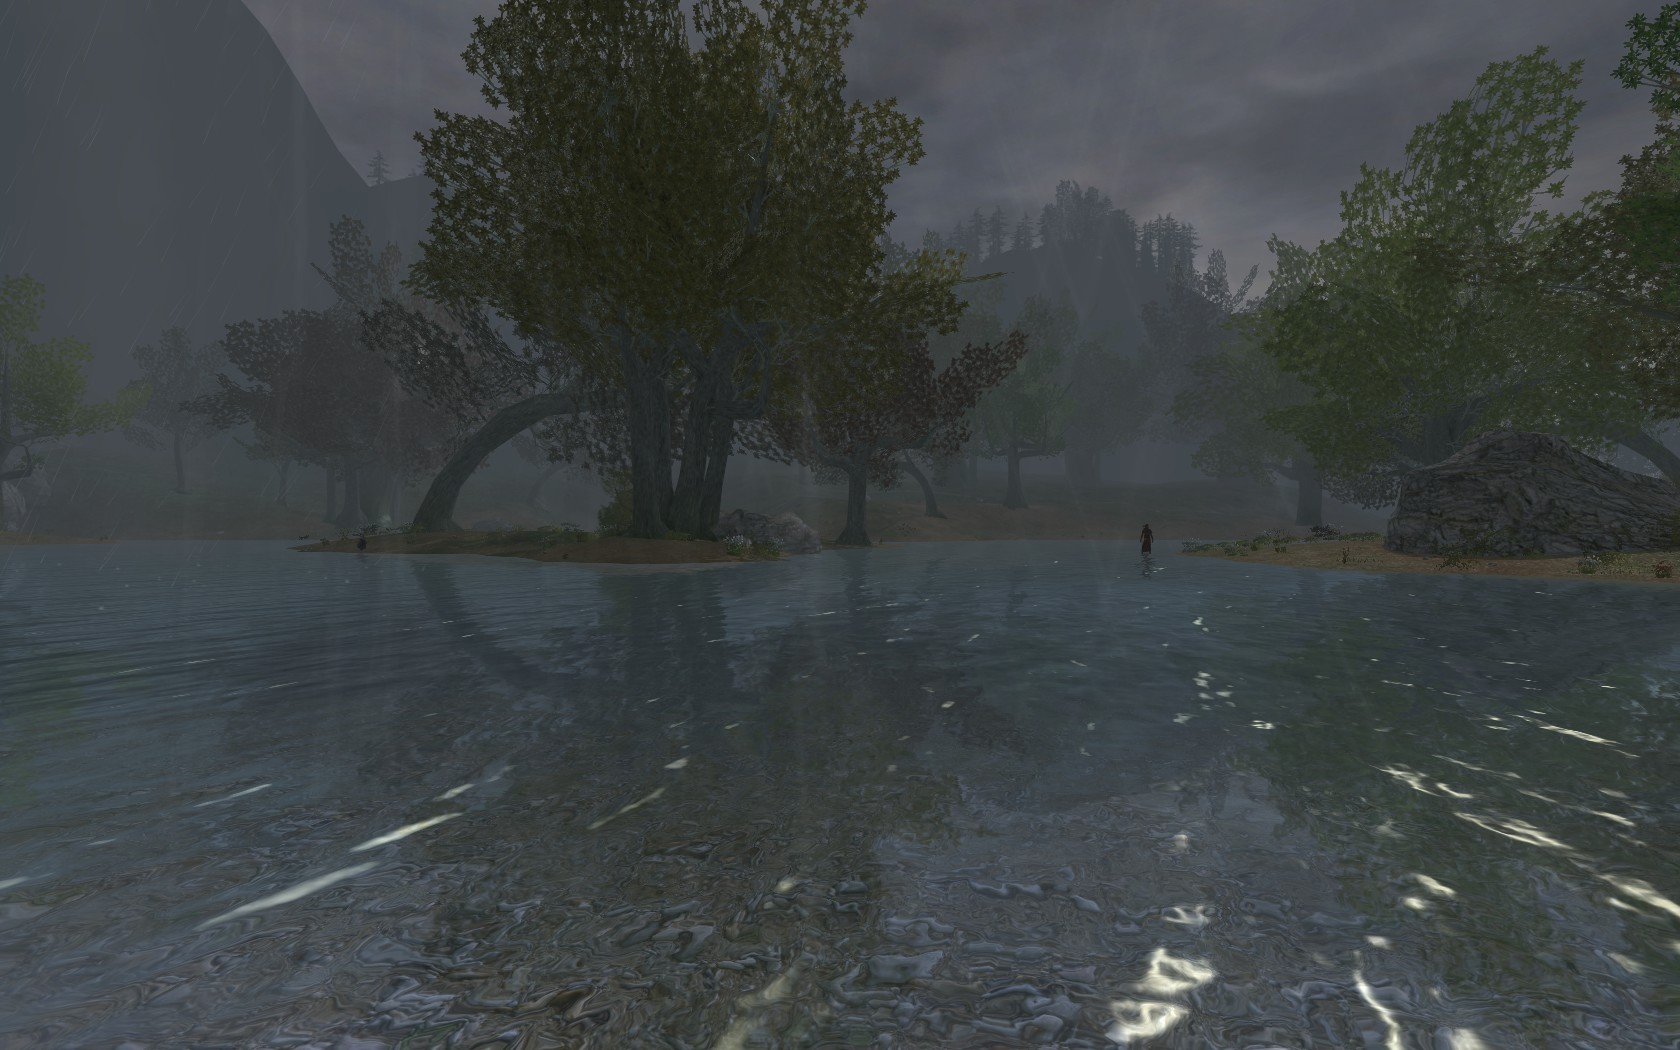 Lord of the Rings Online - A lake in Enedwaith during a storm